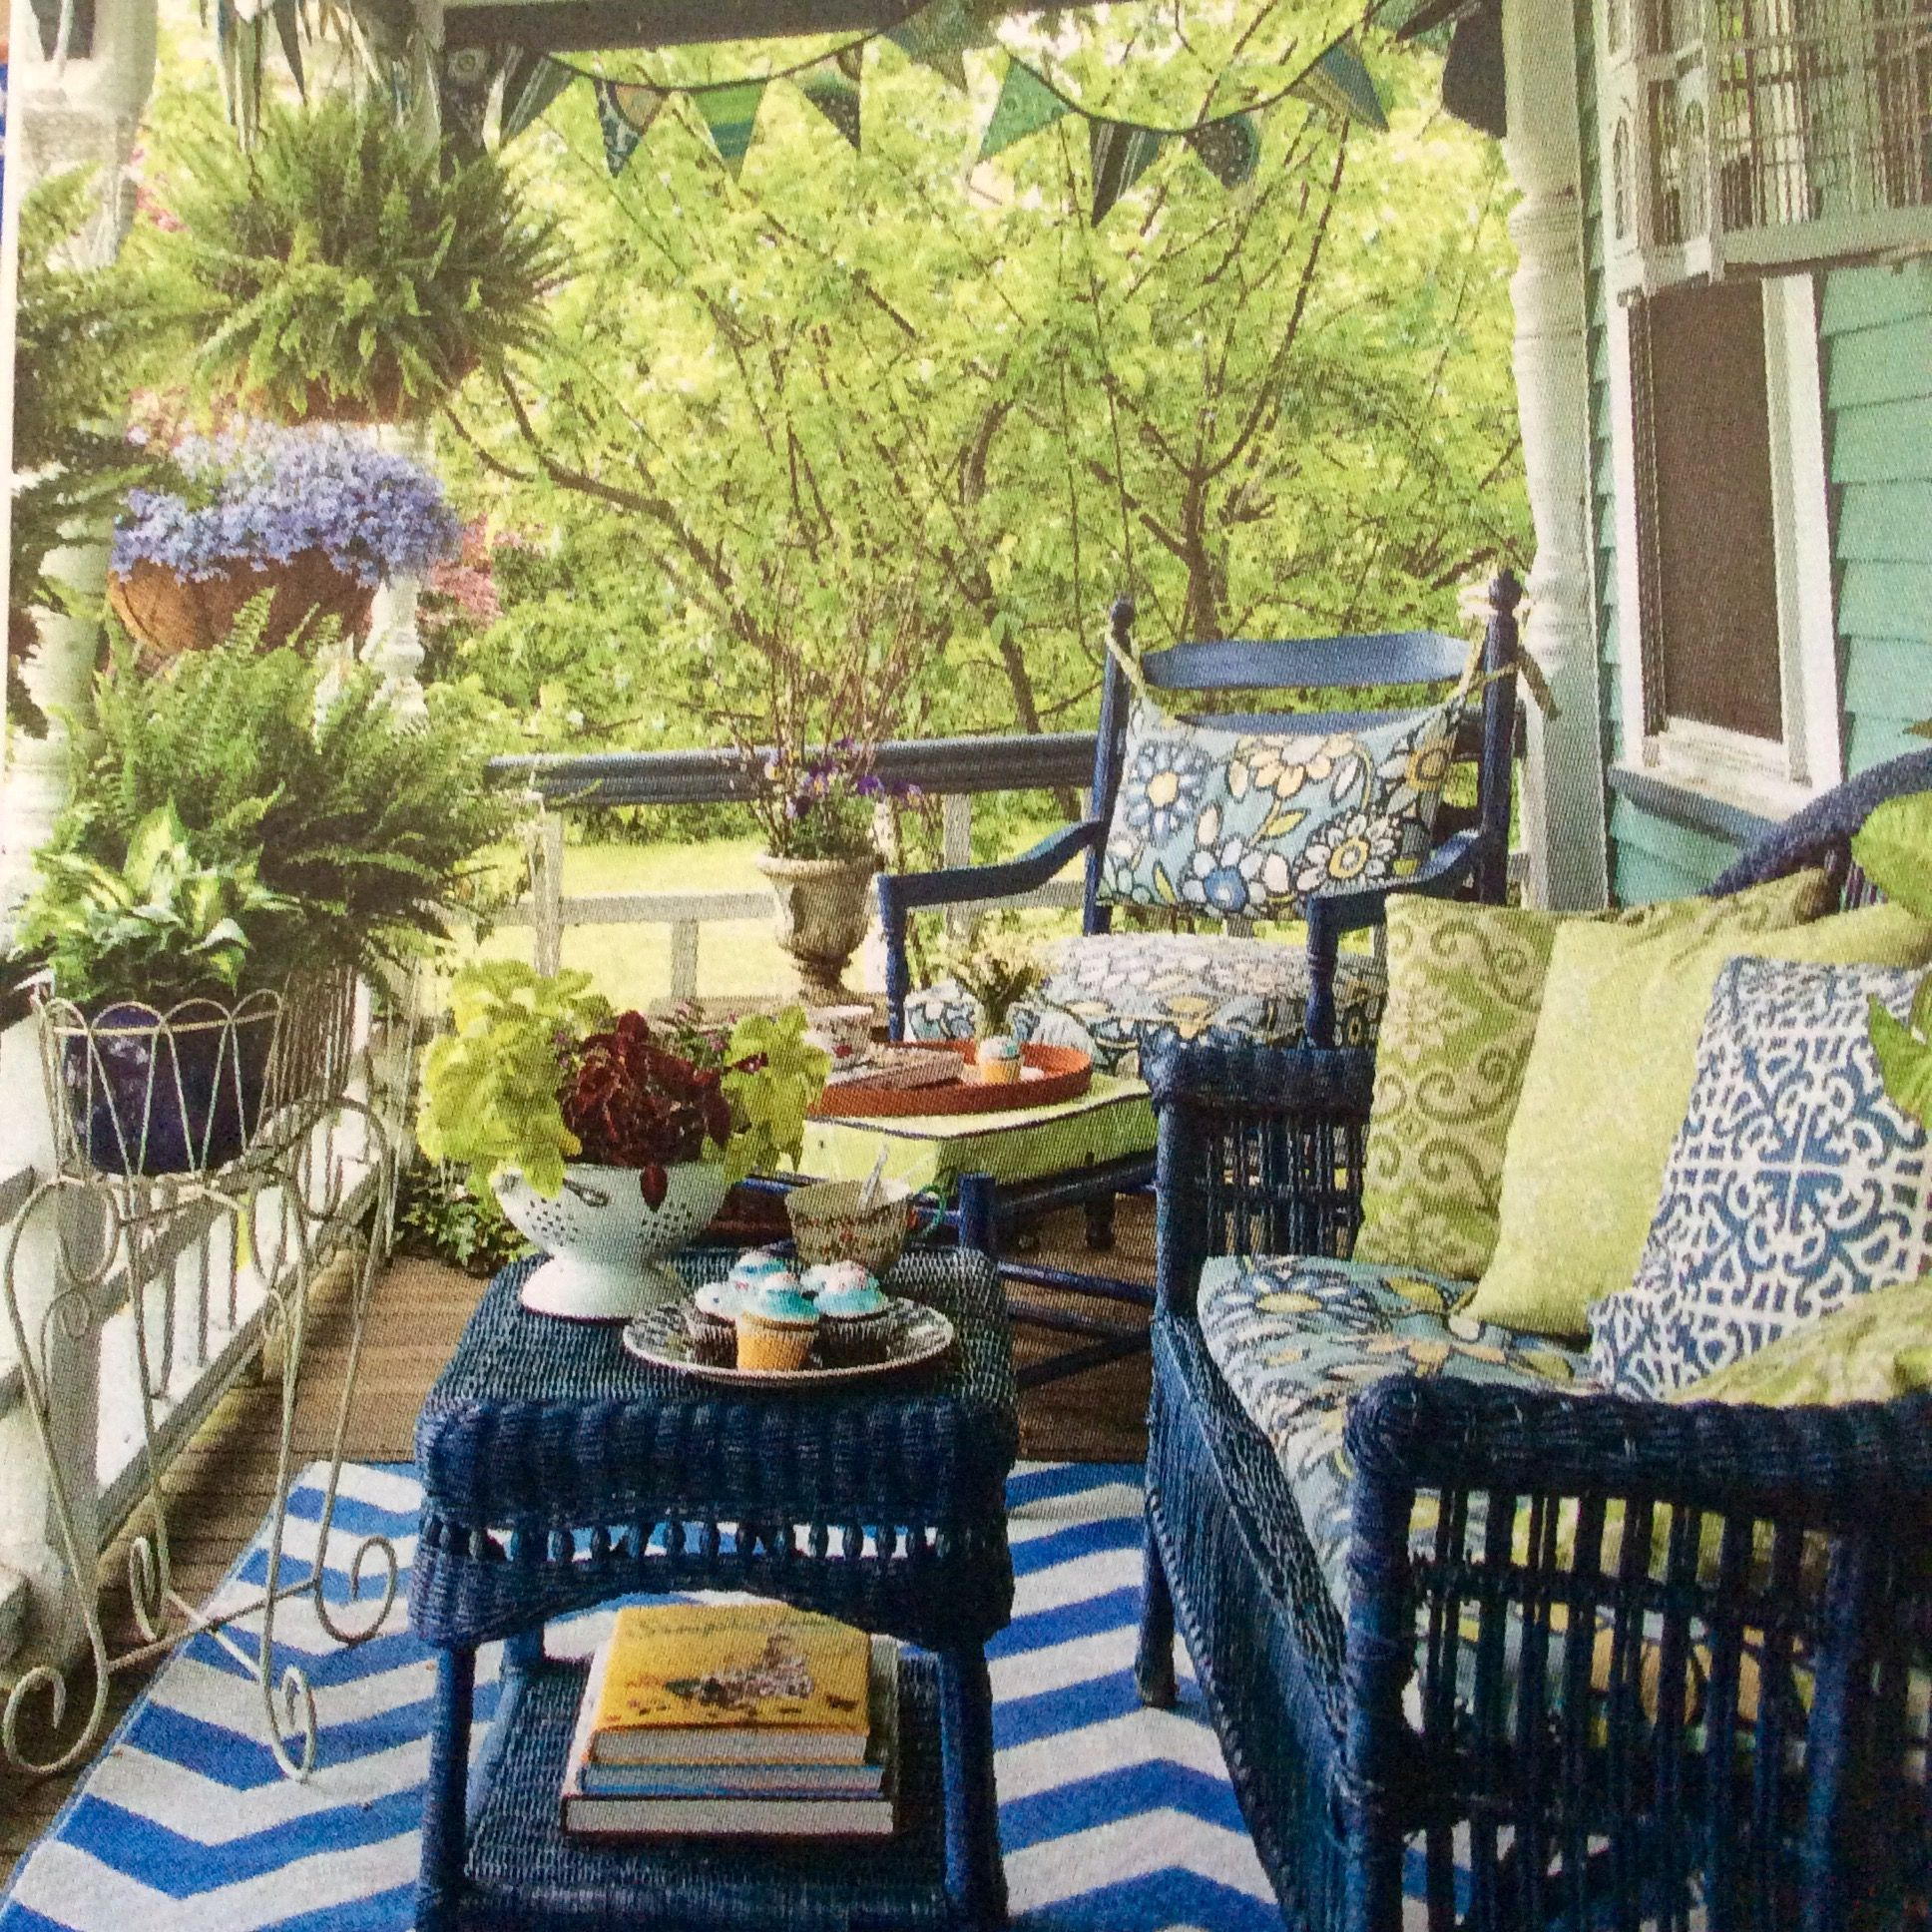 Pin by Stephanie Seipert on Design: Porches & Outdoor ... on Living Spaces Patio Set id=73641